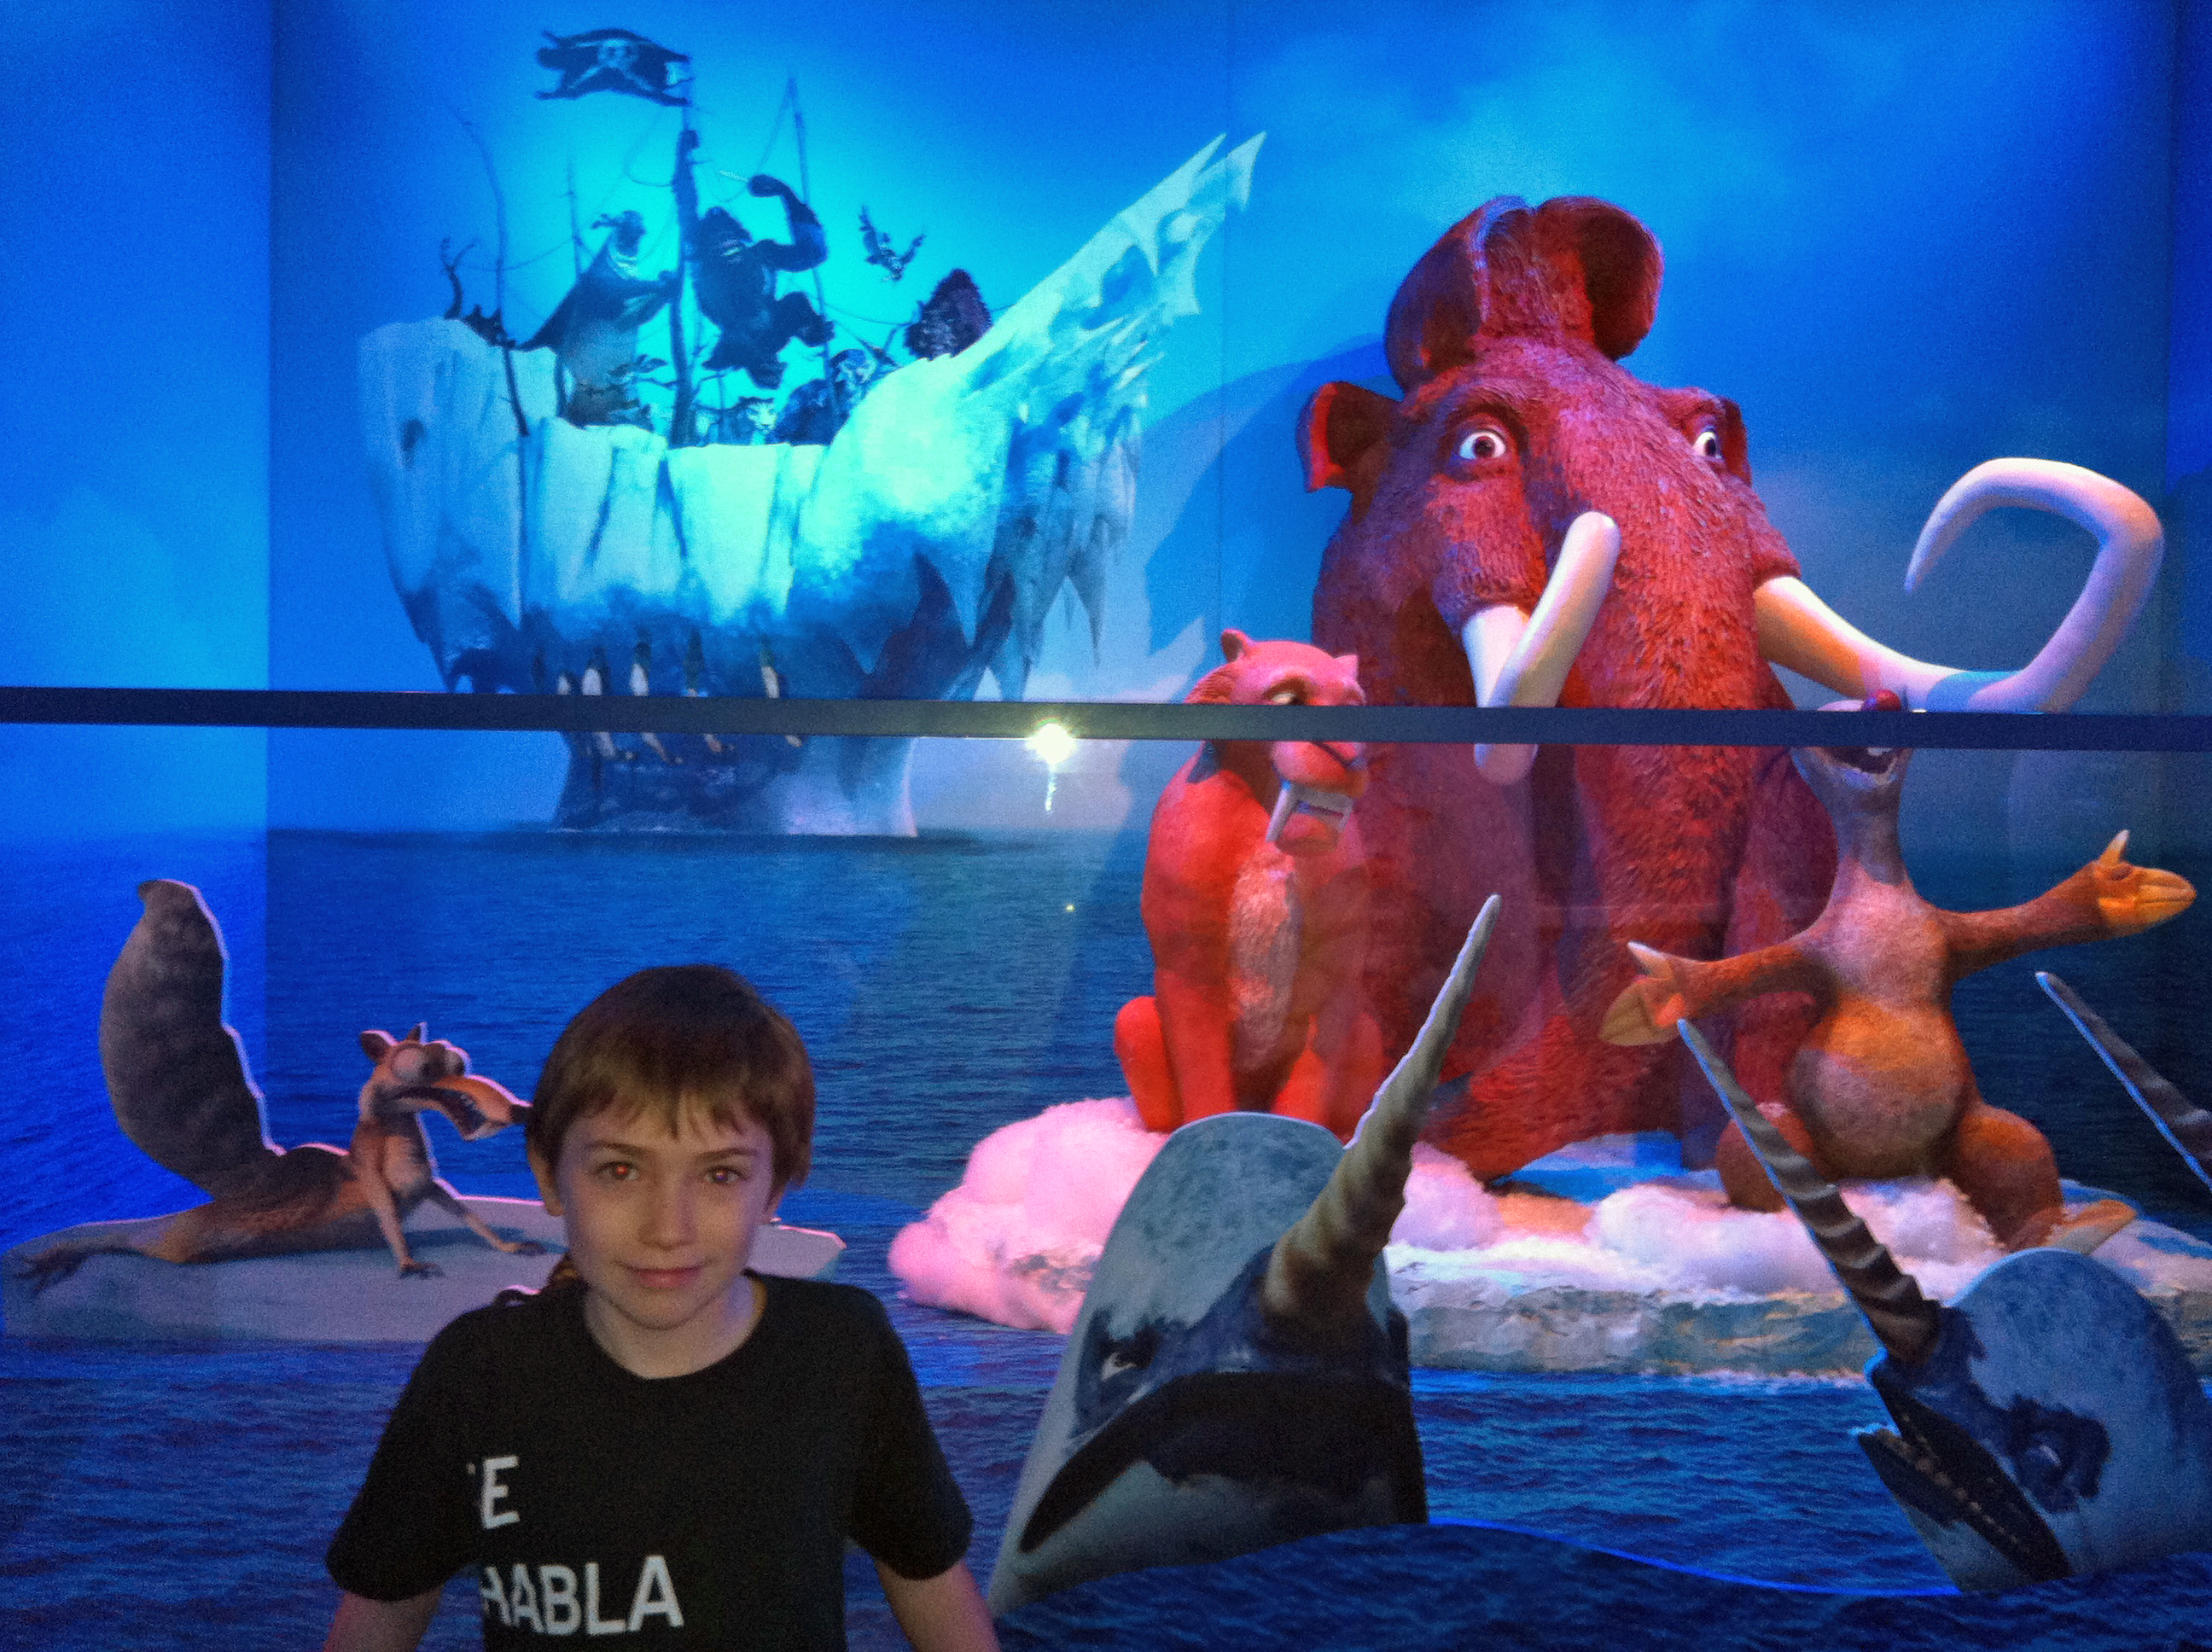 Camp Ice Age at Mall of America Opens Today!